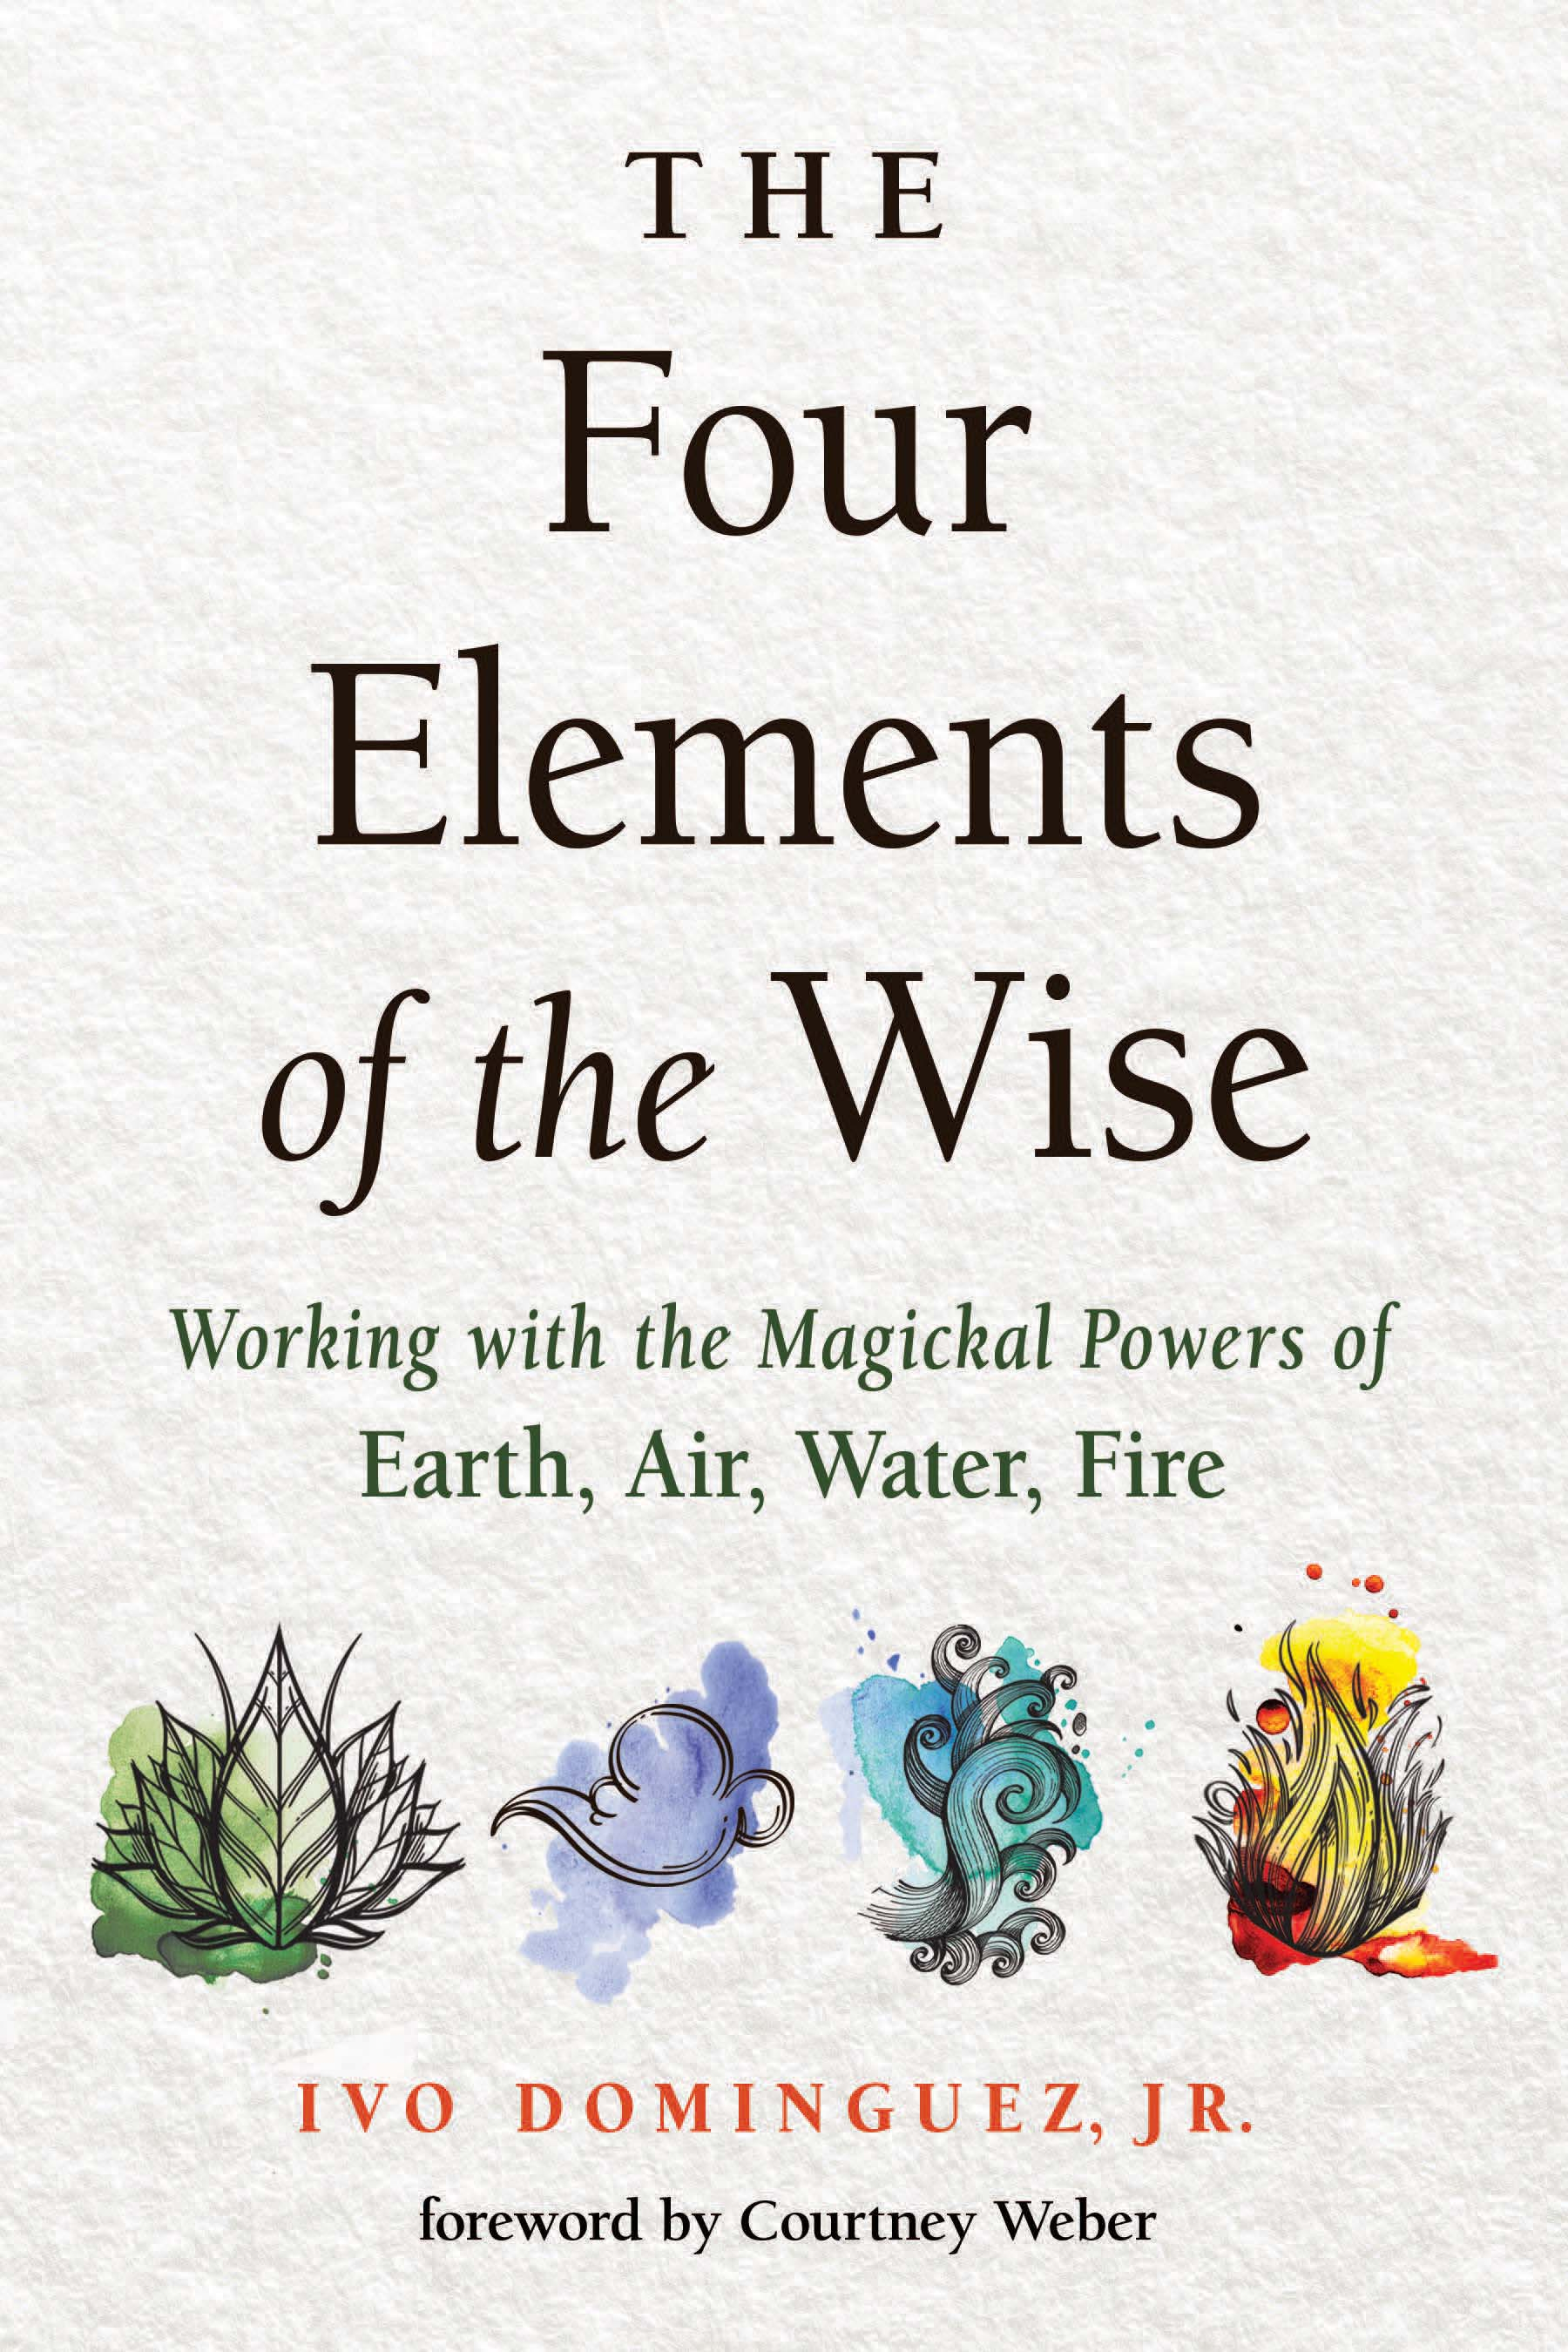 The Four Elements of the Wise: Working with the Magickal Powers of Earth, Air, Water, Fire